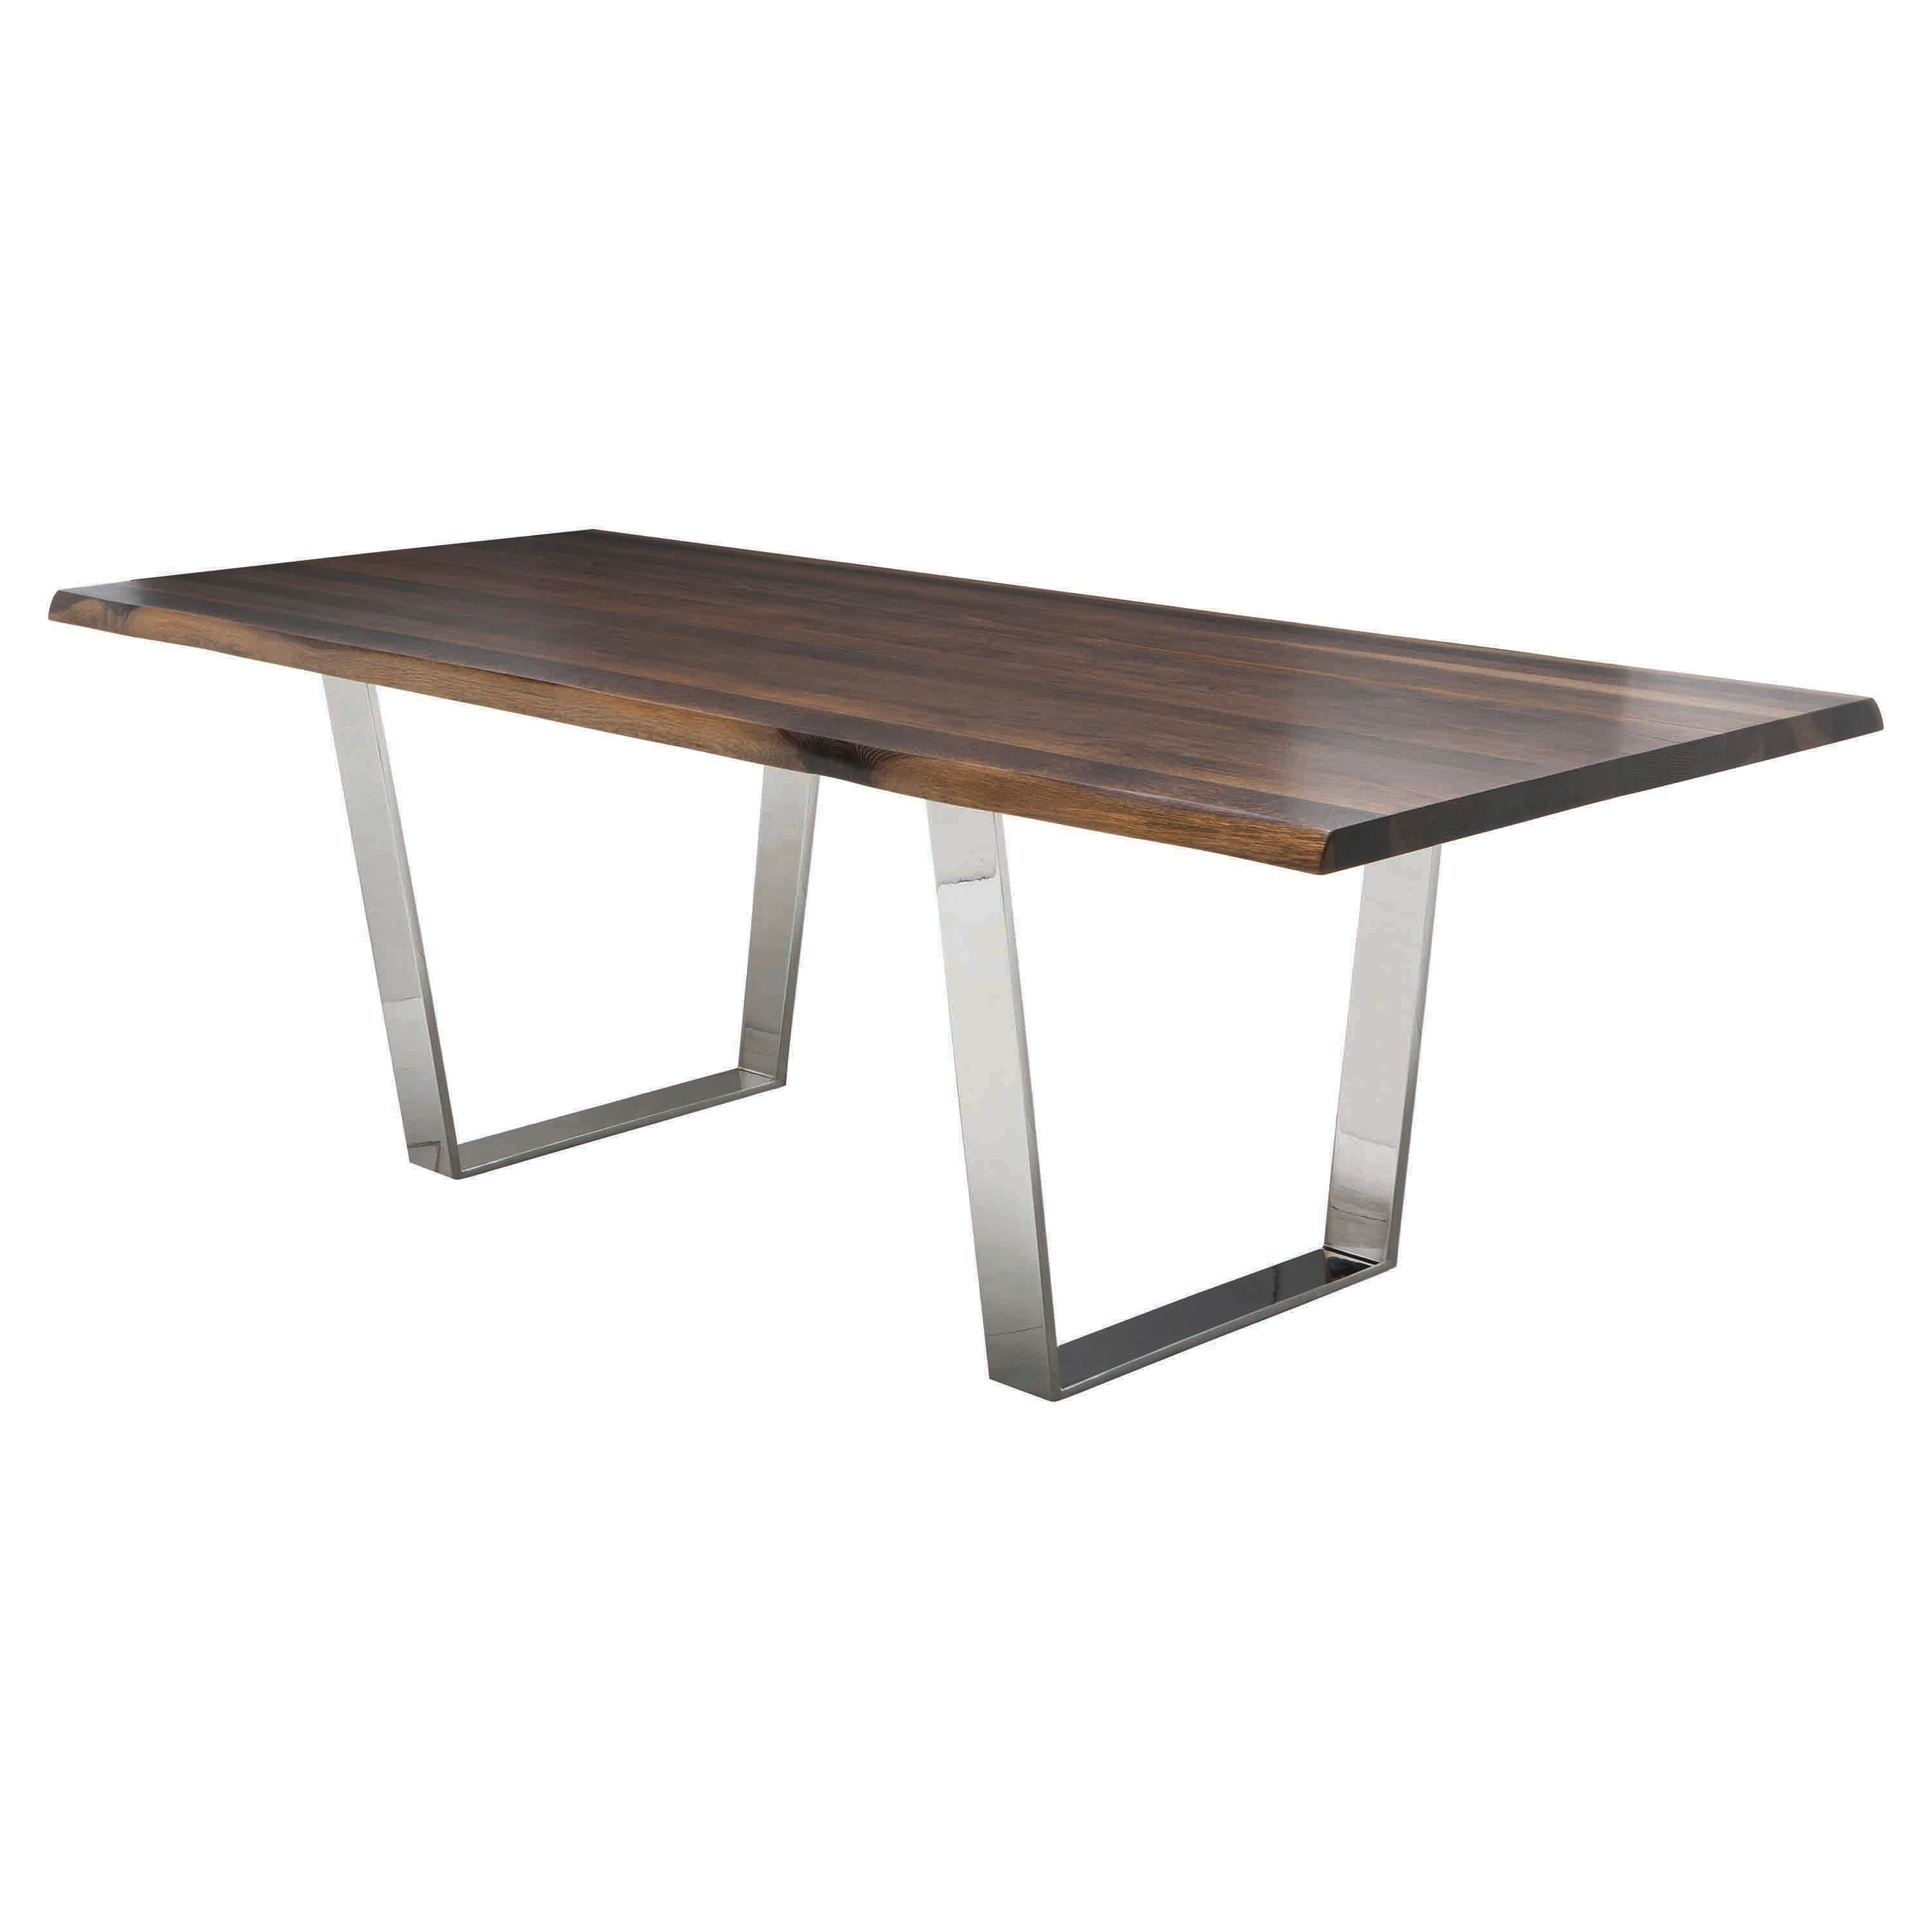 Cogsworth Industrial Brown Oak Stainless Steel Dining Table - 78W